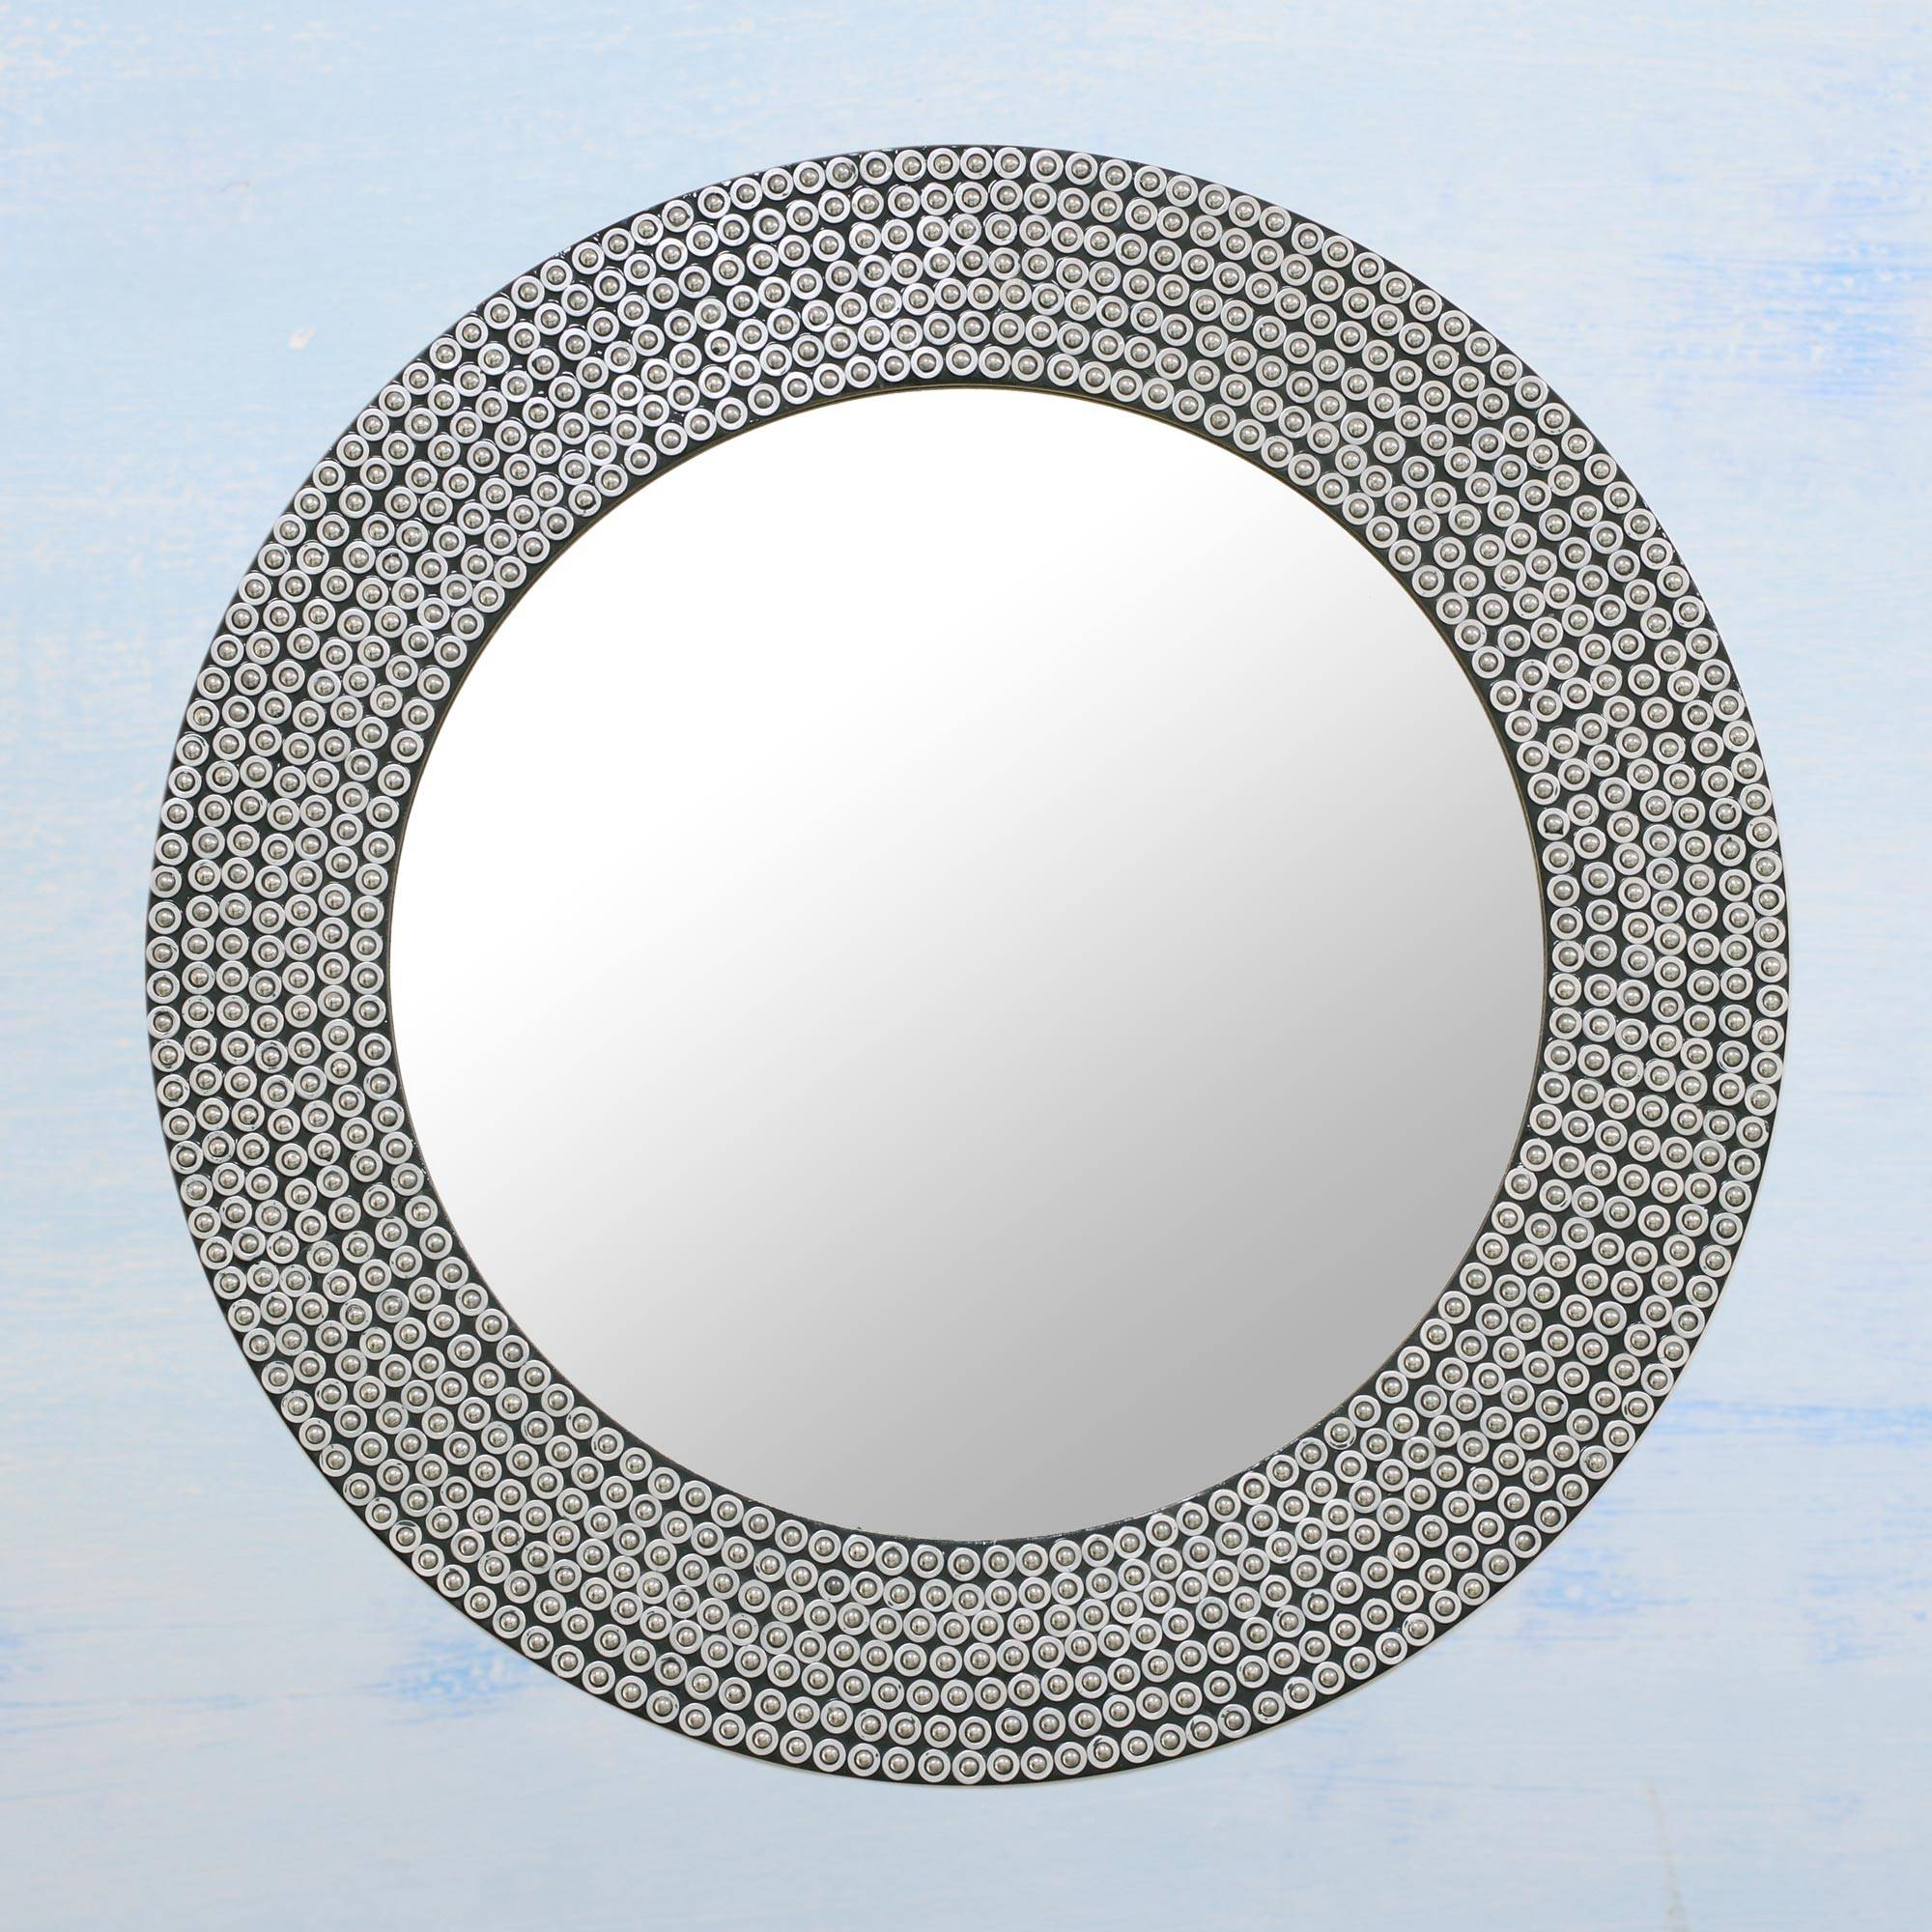 Circular Shimmering Metal Wall Mirror From India, 'silvery Shine' Pertaining To Round Galvanized Metallic Wall Mirrors (View 13 of 30)